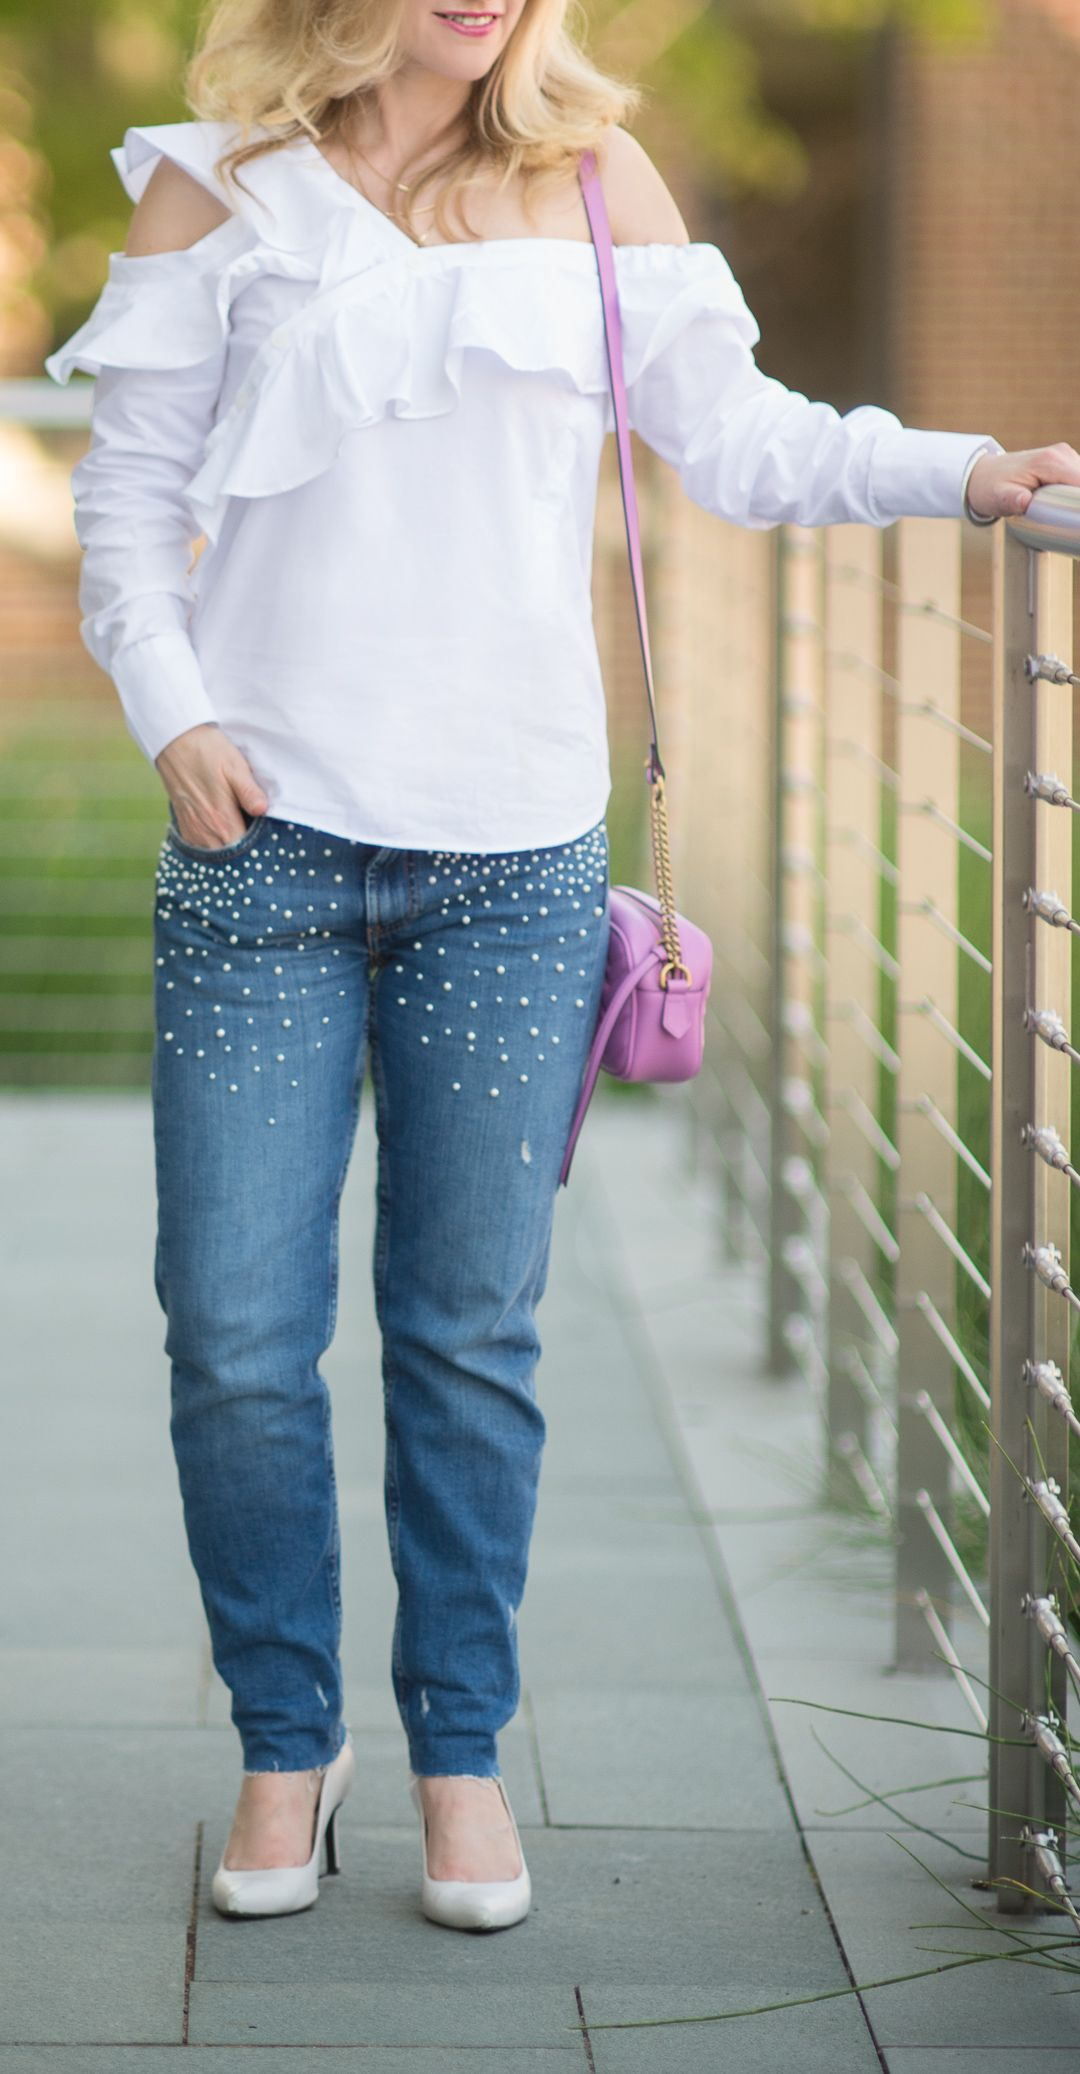 Style Trend  Pearl Embellished Jeans   Gucci marmont, Embellished ... 1e3a11cf7ff